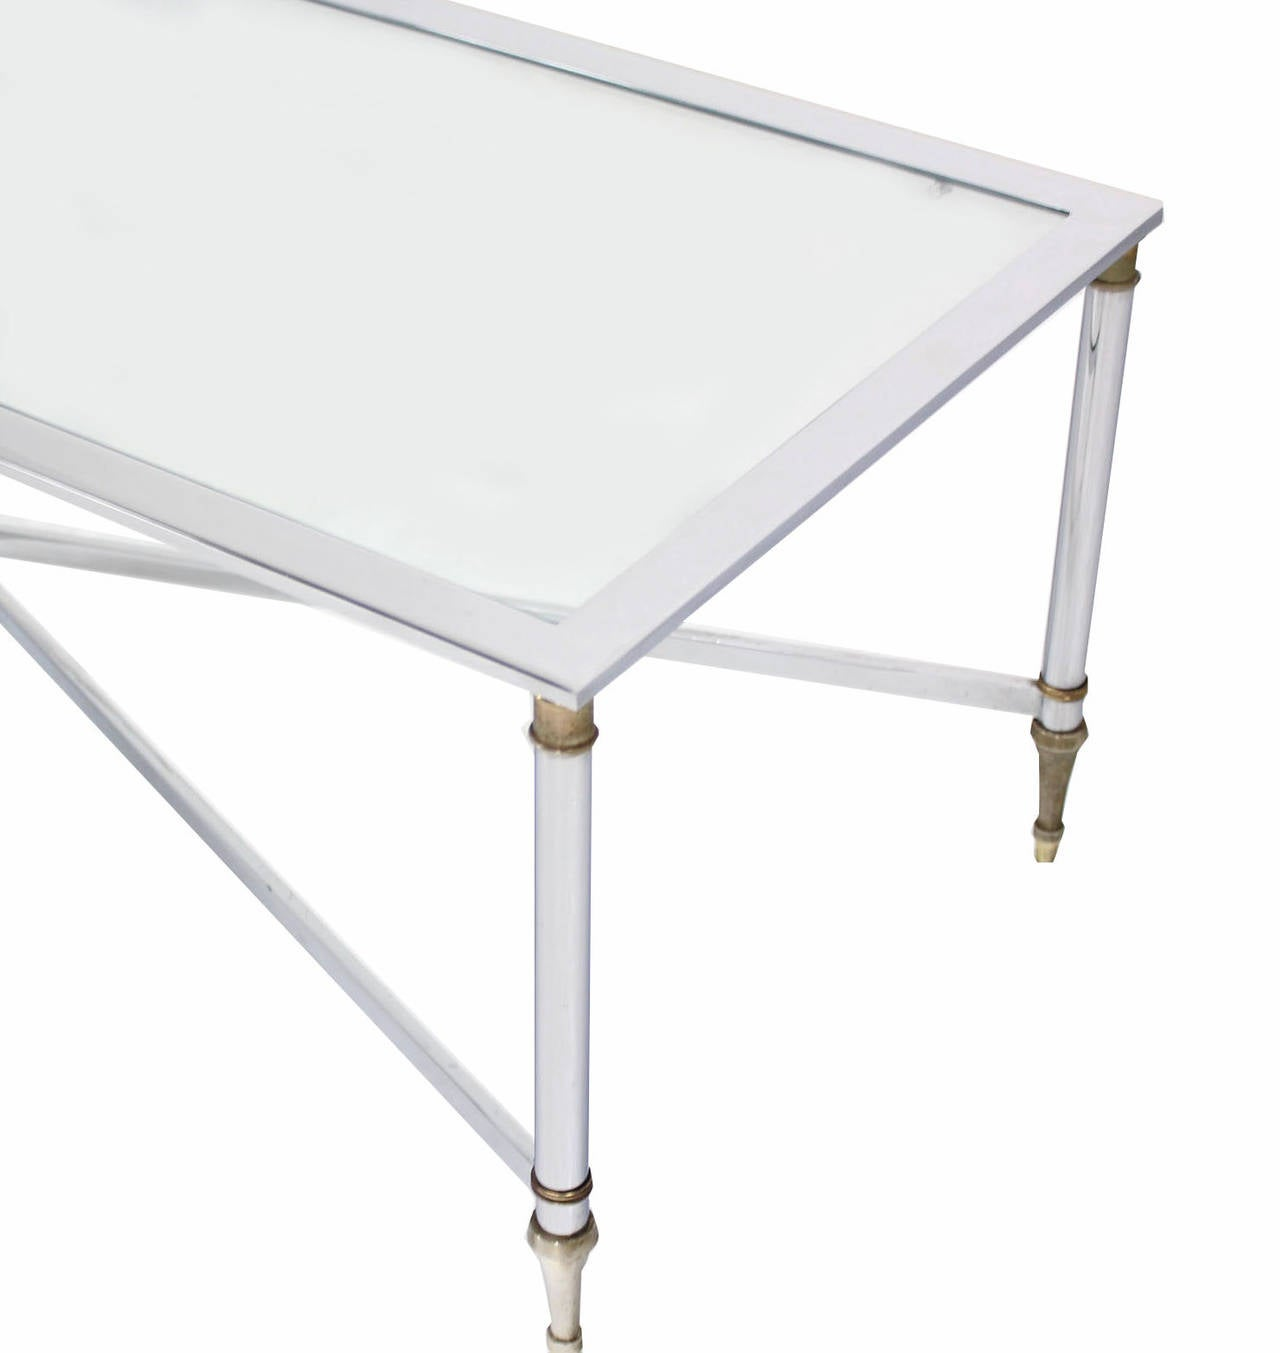 Chrome brass x base glass top rectangular coffee table at for Rectangular coffee table with glass top